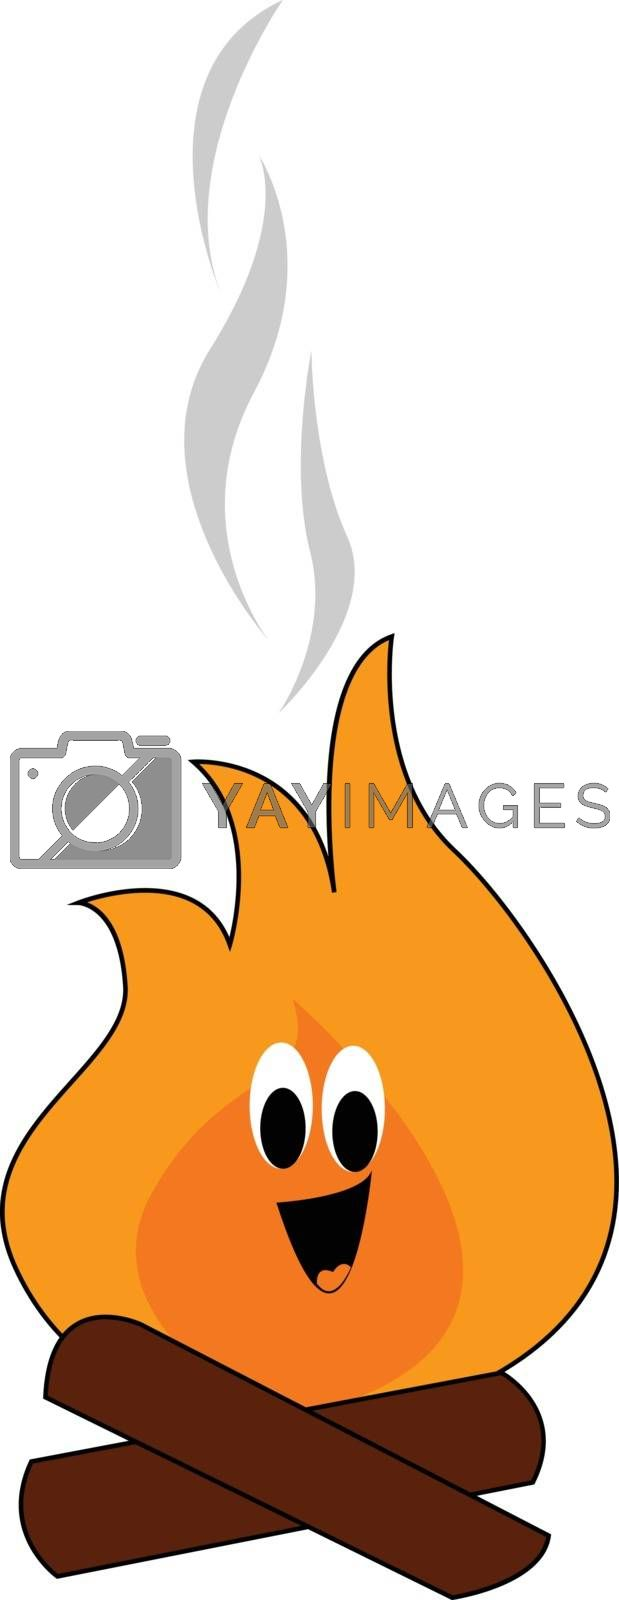 Royalty free image of Emoji of a smiling campfire vector or color illustration by Morphart